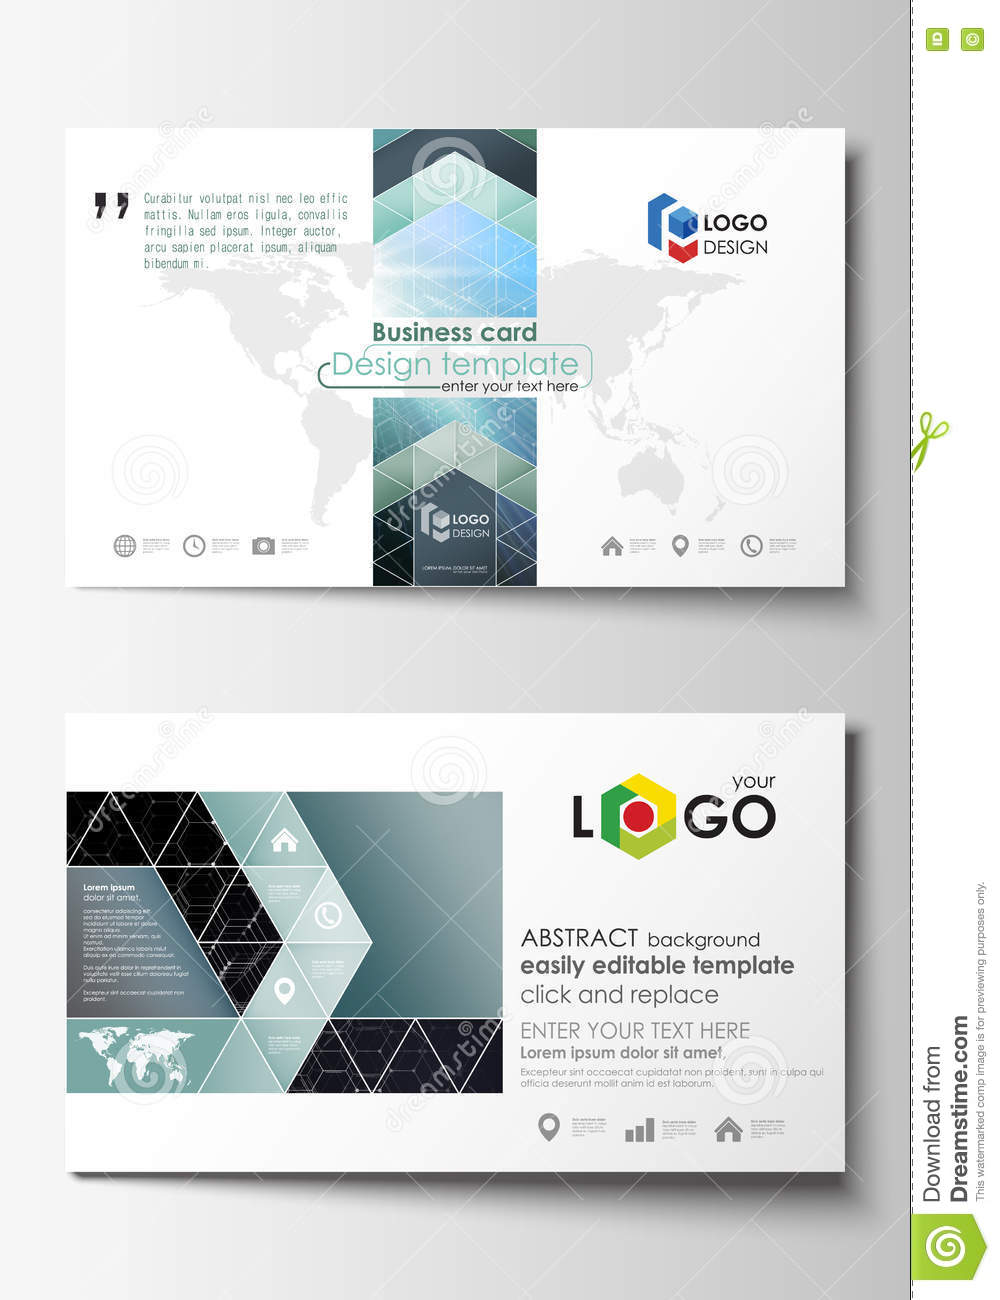 Business card templates cover template easy editable abstract business card templates cover template easy editable abstract flat design vector layout chemistry pattern hexagonal magicingreecefo Choice Image